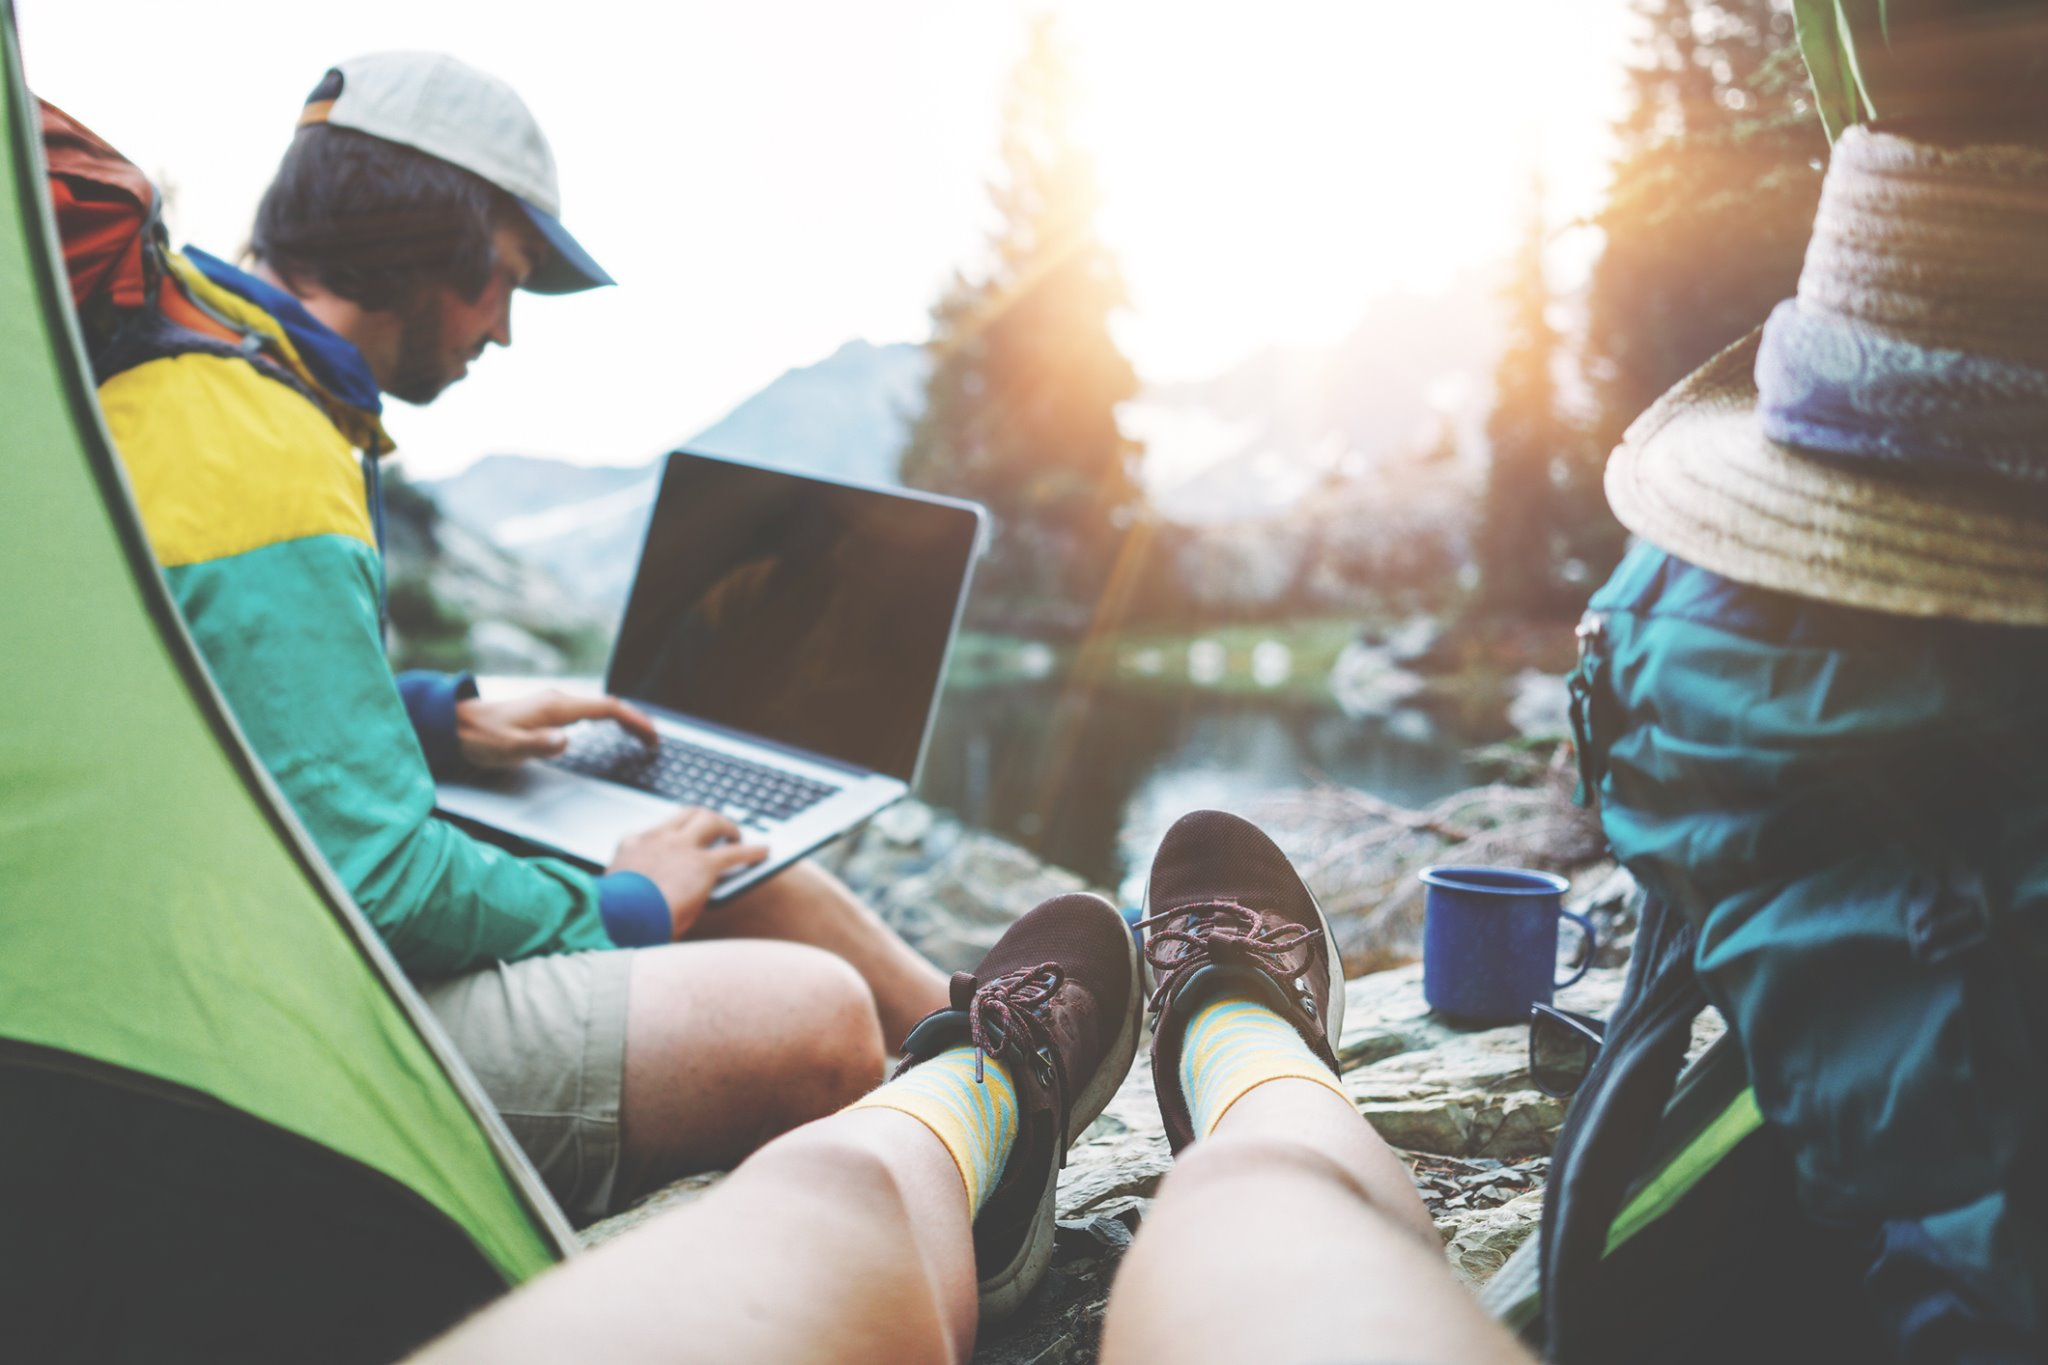 Now that the weather is warmer, it's time to live that outdoor life! Whether you're hiking the trails or just cruising your local park, Verbatim has products that support your lifestyle! #TechnologyYouCanTrust